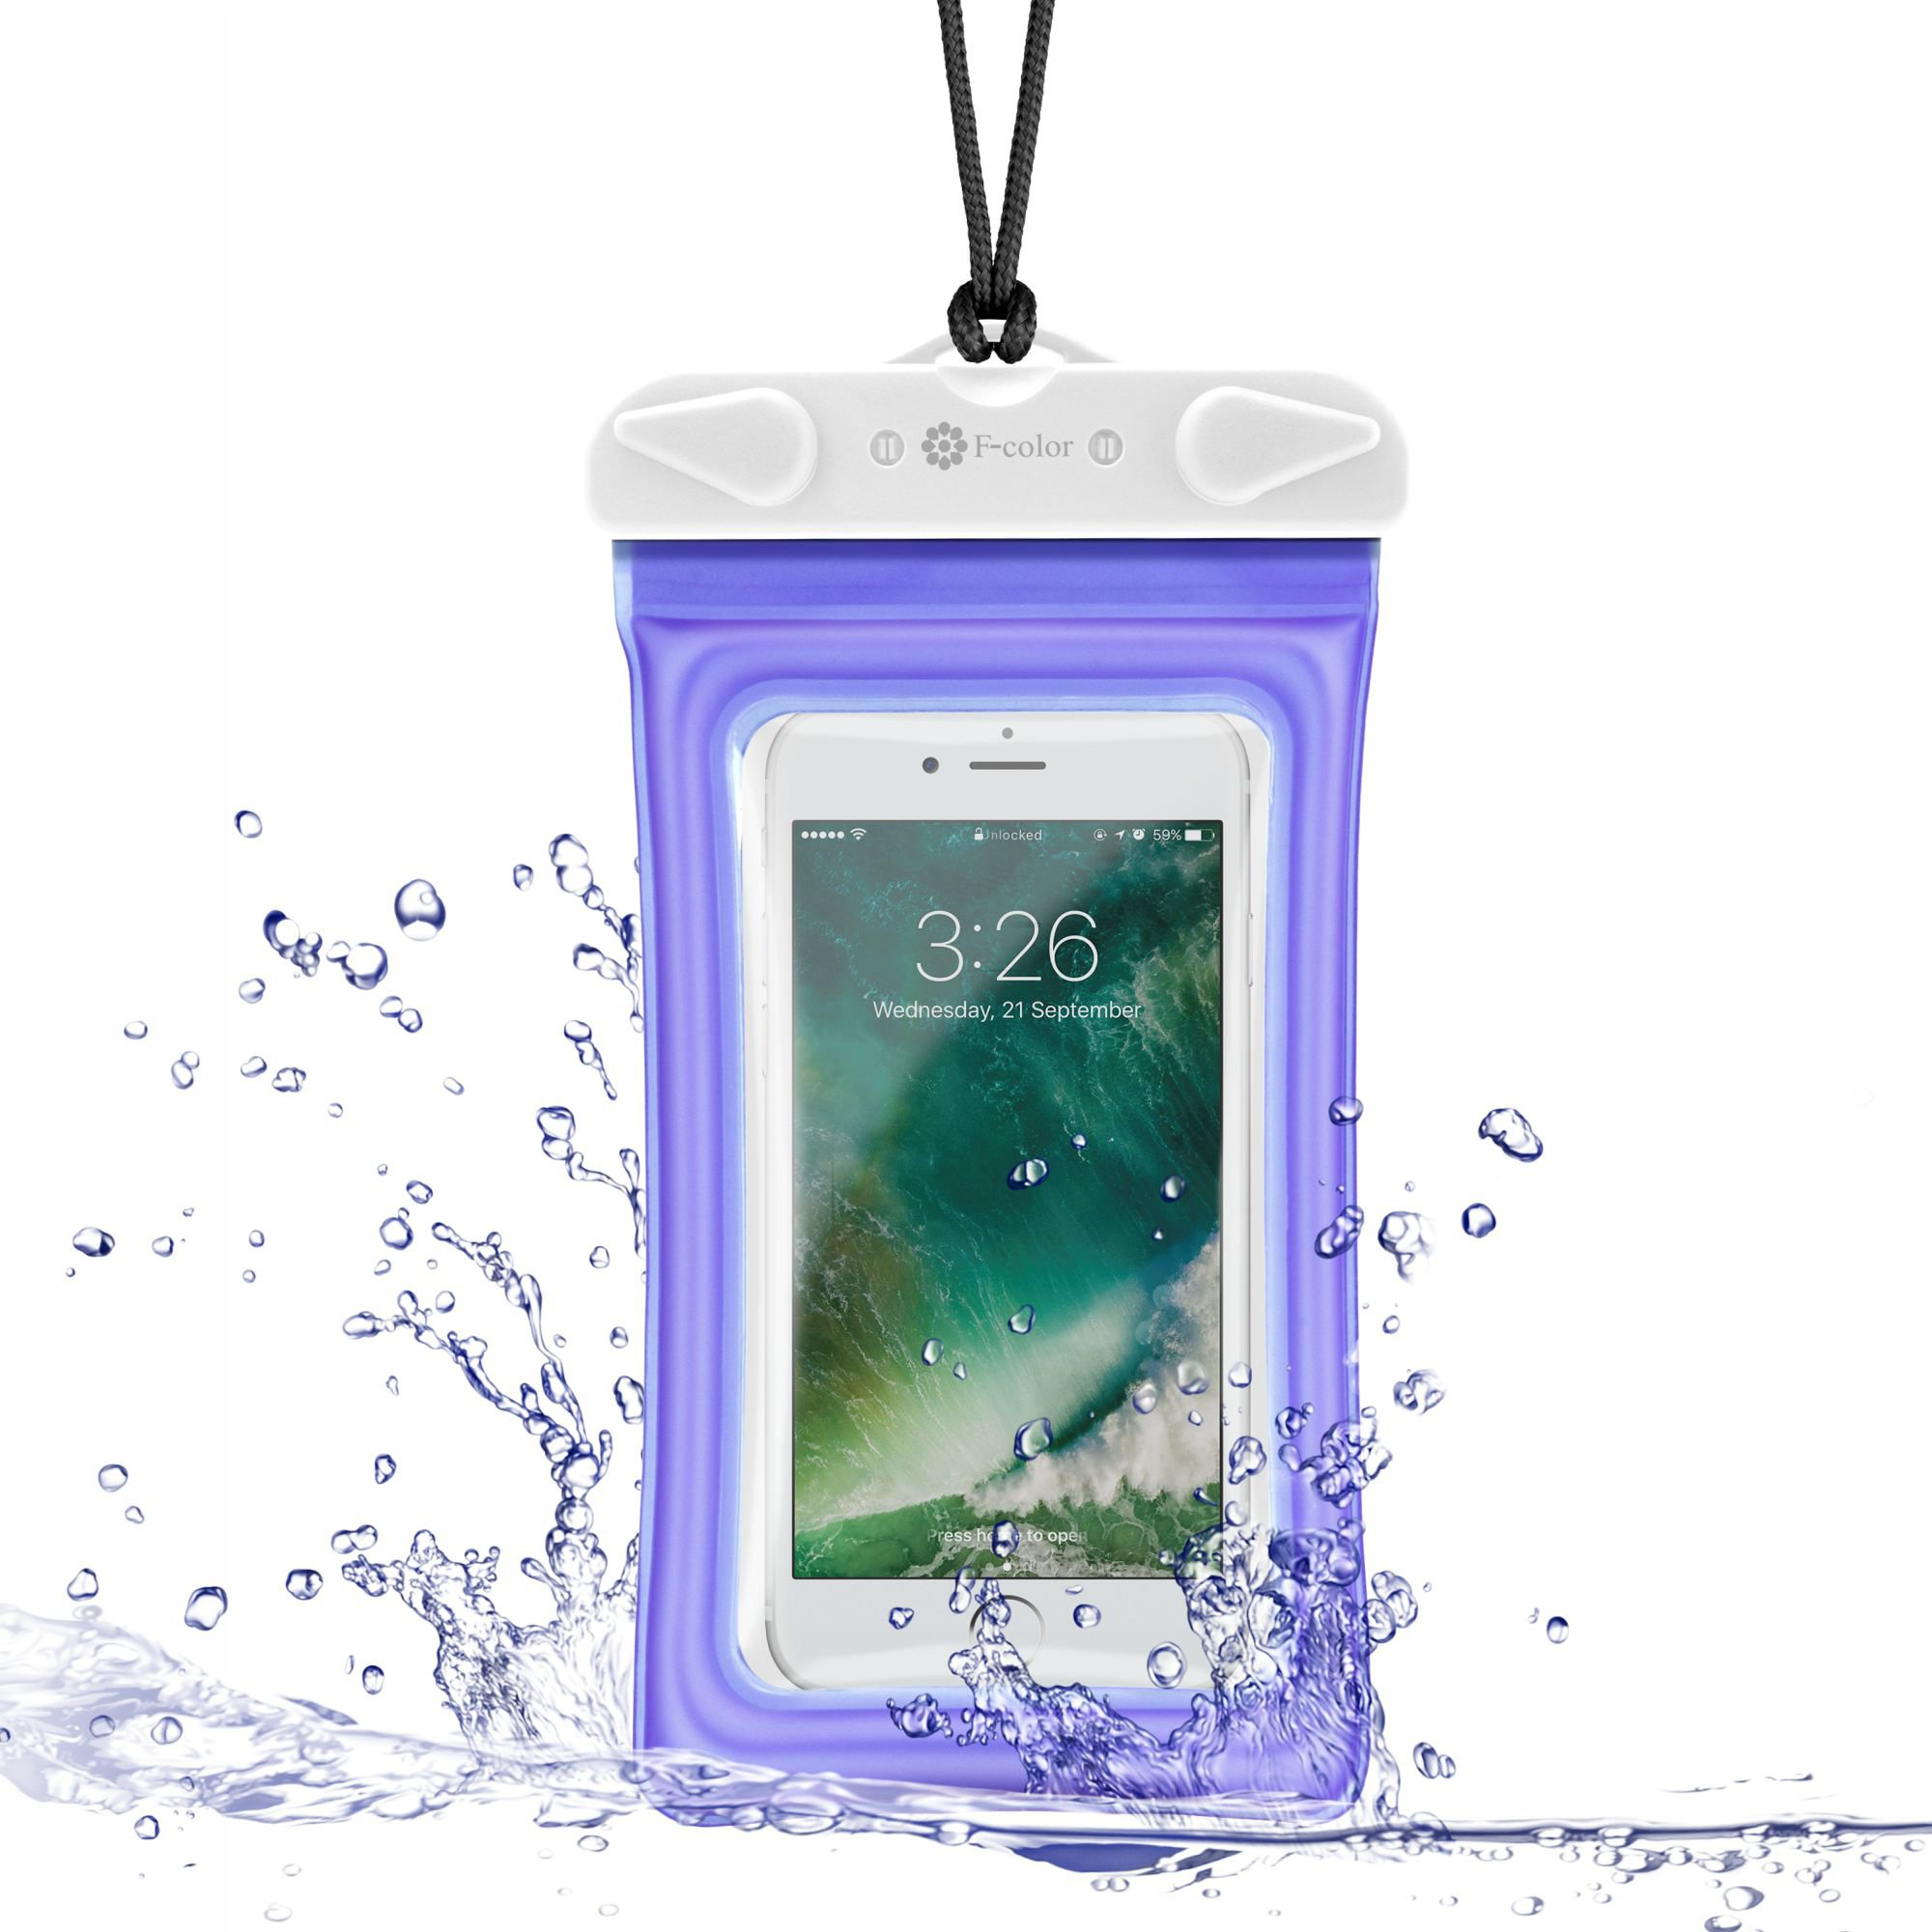 Waterproof Phone Pouch, 4 Pack F-color Clear Floating Waterproof Phone Case with Armband Beach Bag for Boating, Skiing, Water Sports, Compatible with iPhone X 8 7 6S Plus SE 5, Google Pixel and More by F-color (Image #6)